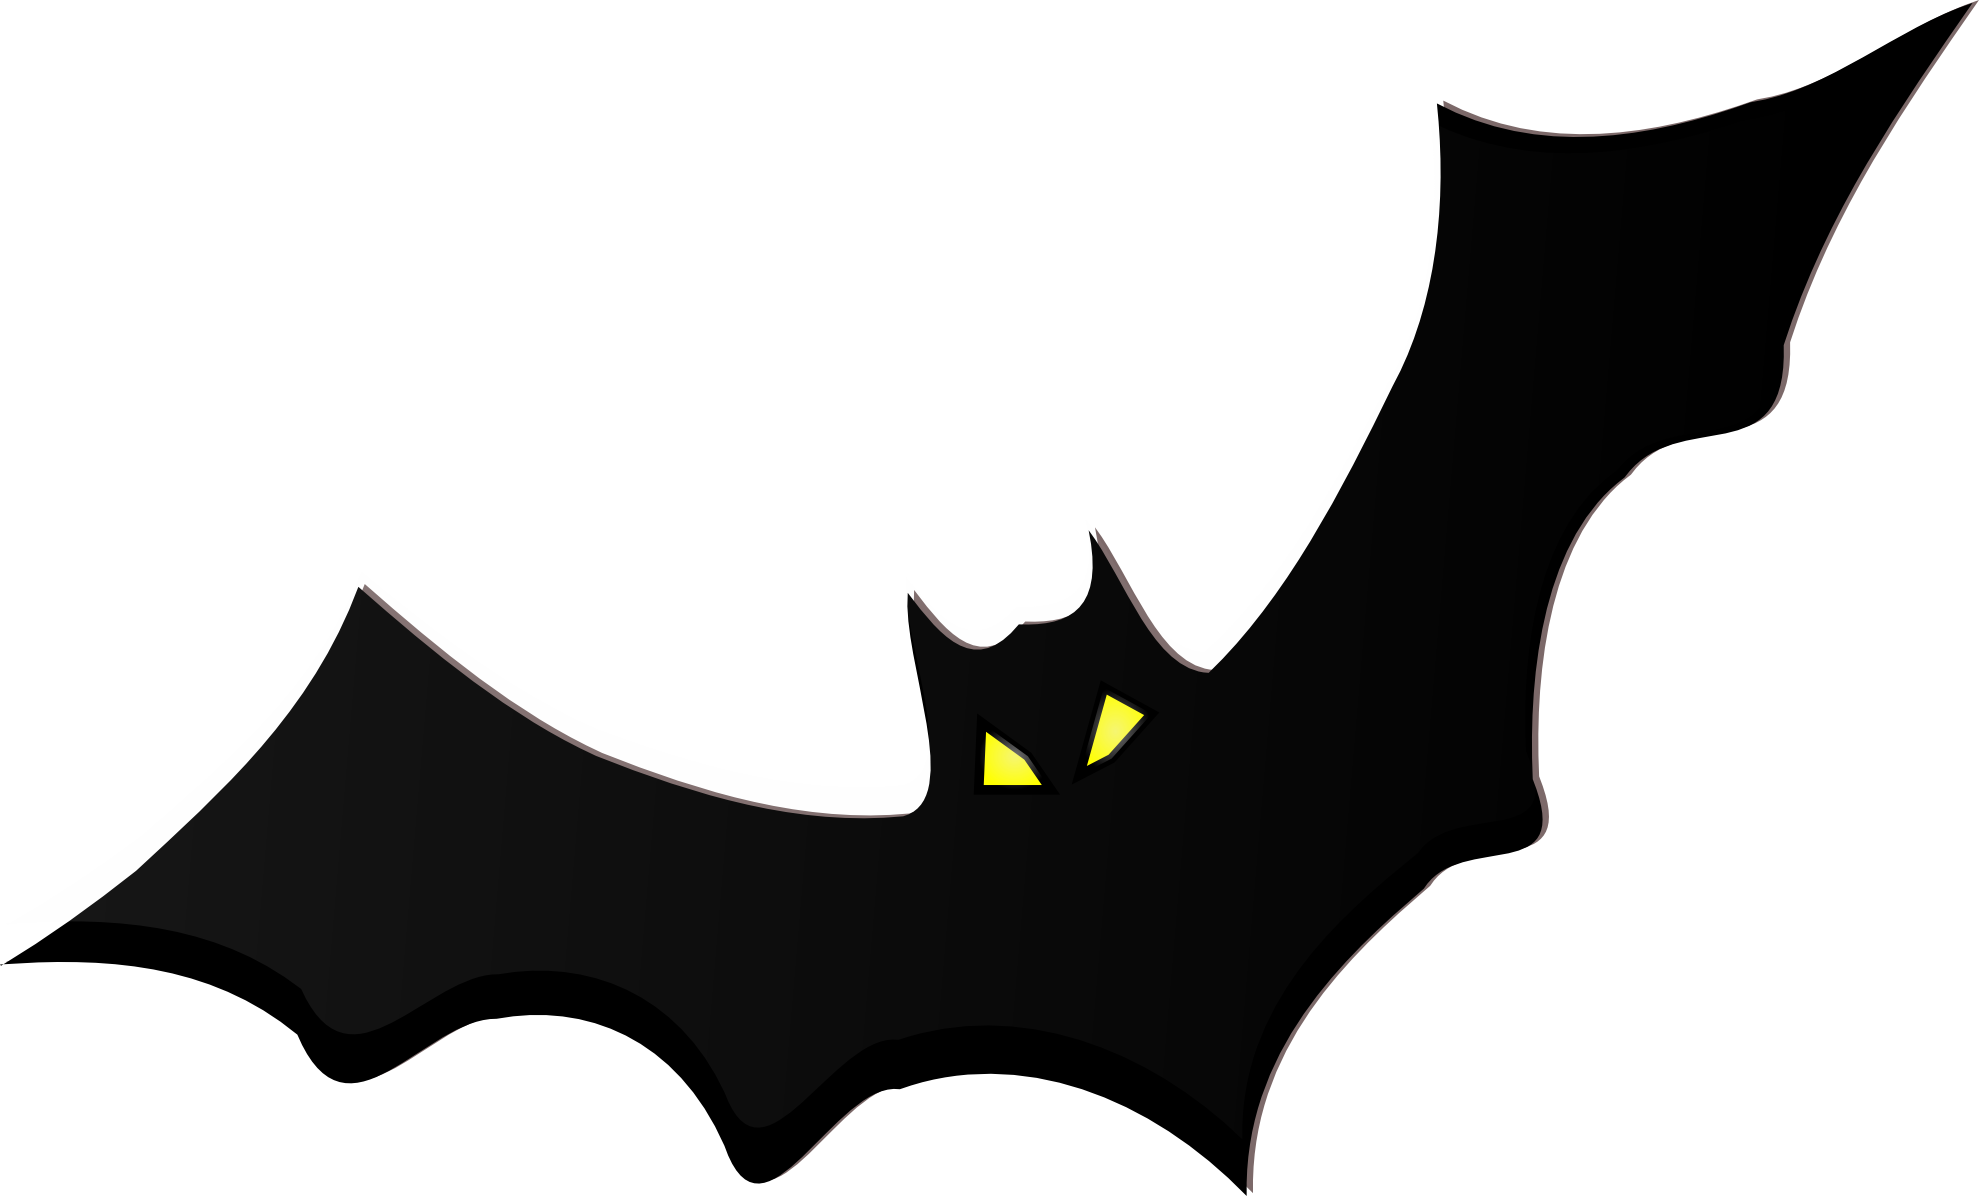 bat clipart clip bats cartoon drawing printable batman craft halloween powerpoint cliparts activities night vampire